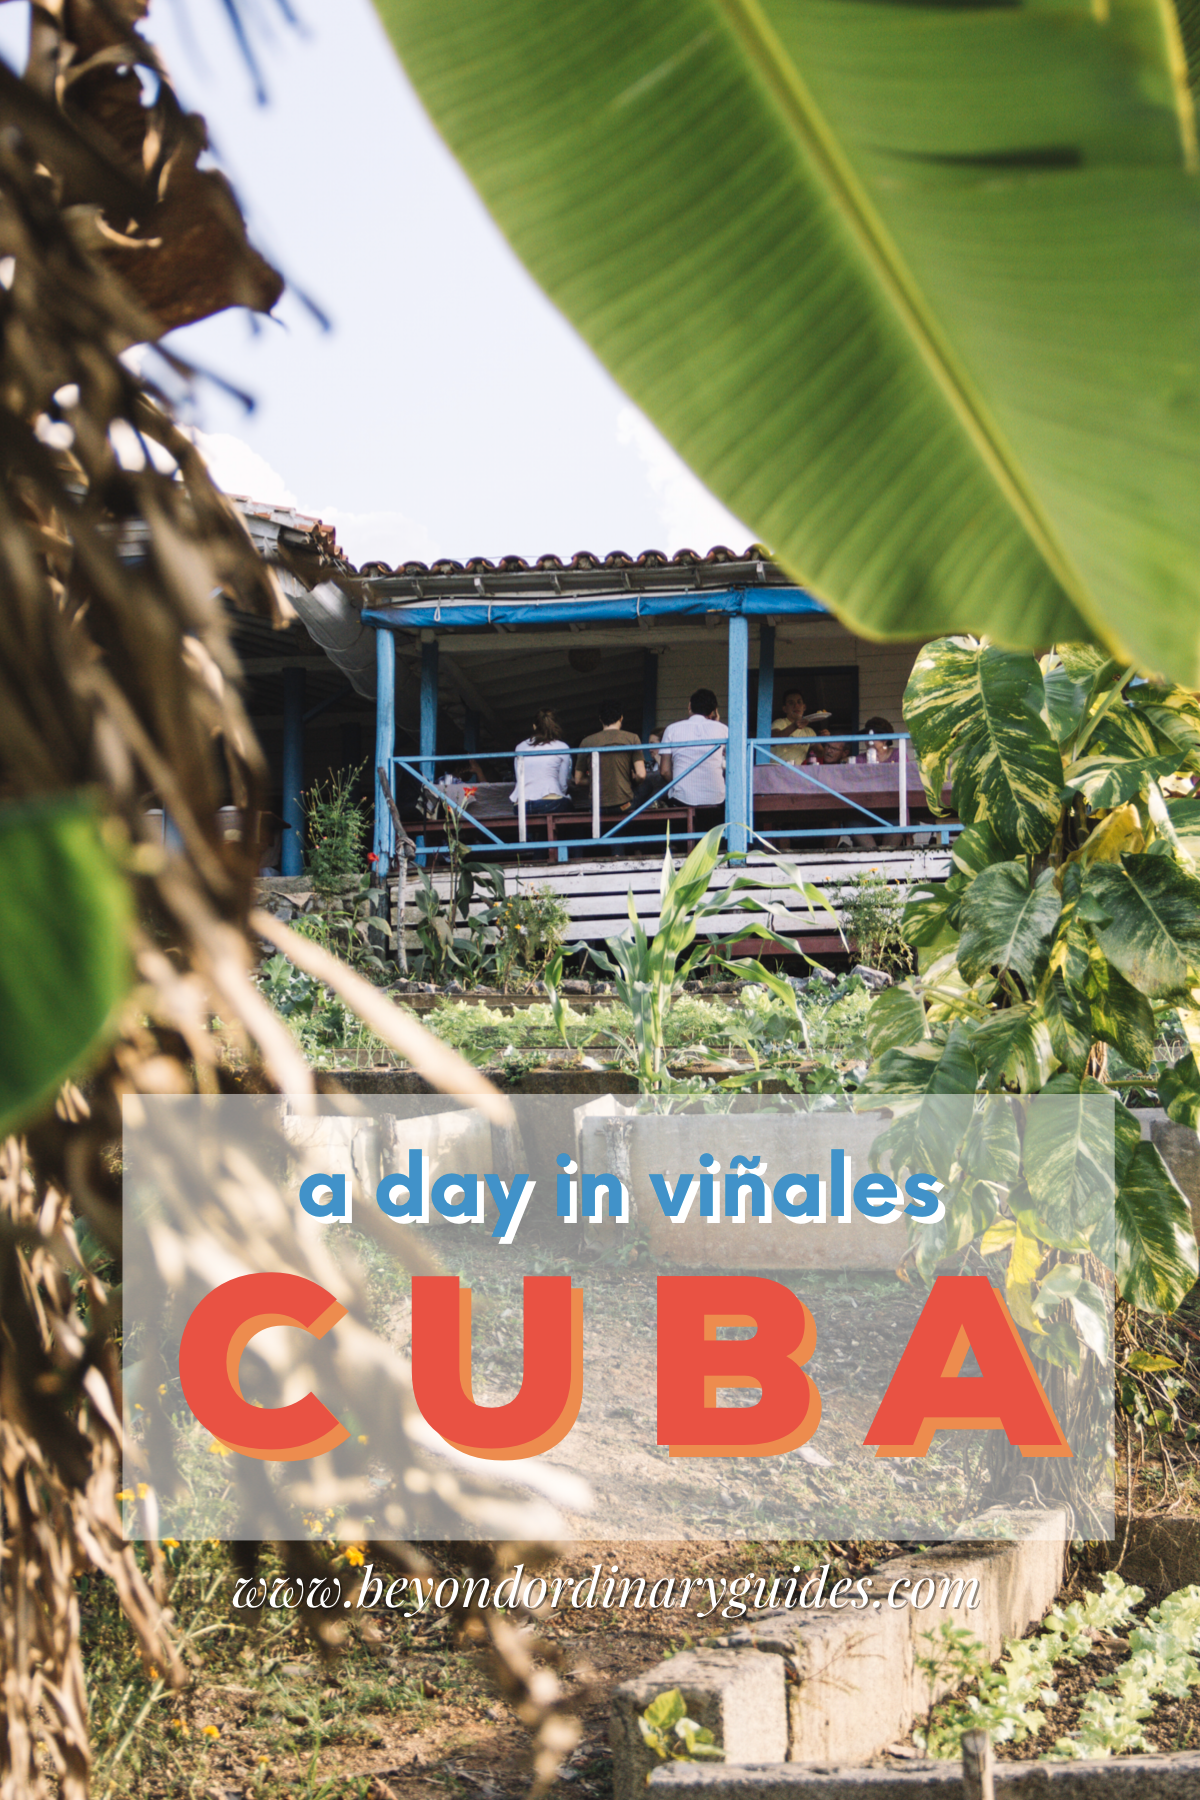 A Day in Vinales Cuba with Coast to Costa | Beyond Ordinary Guides